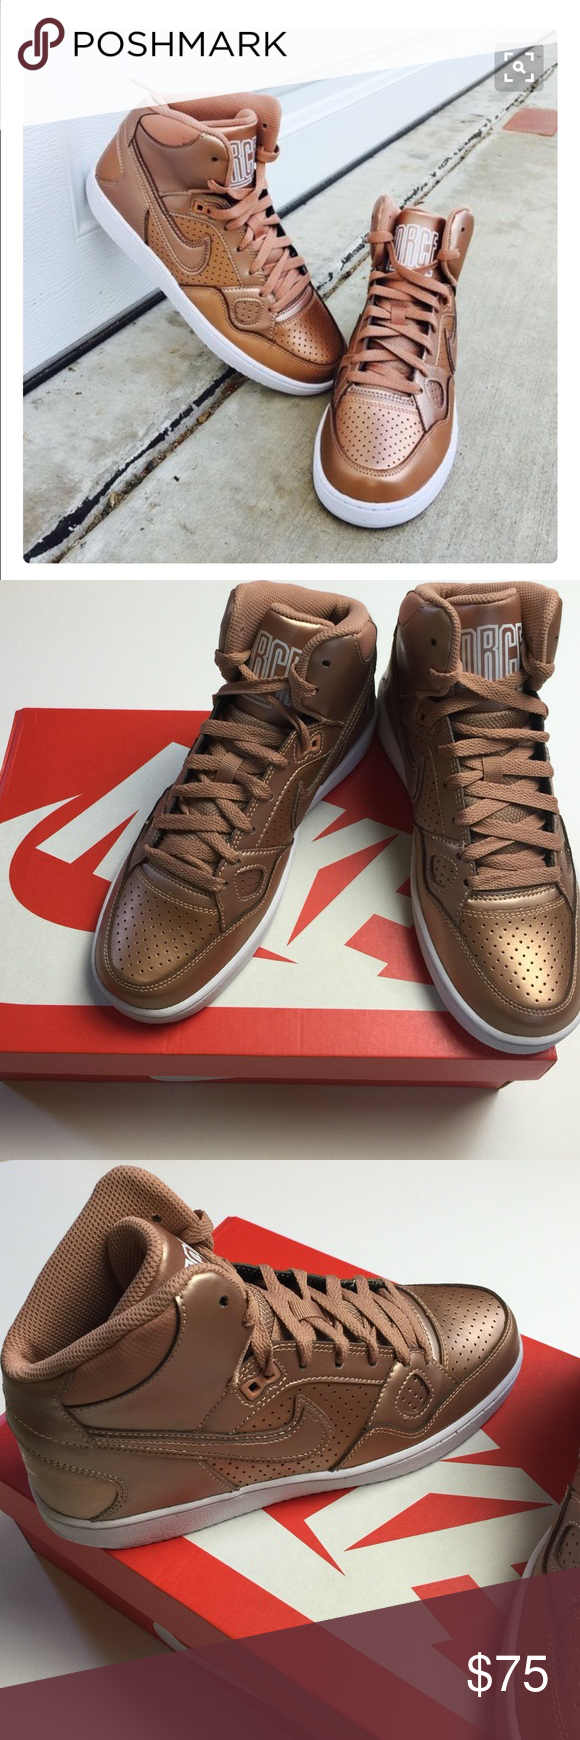 97f70c36e5fc NWT Nike bronze tall sneakers New in box women s son of force tall Nike  sneakers rare bronze color Nike Shoes Sneakers